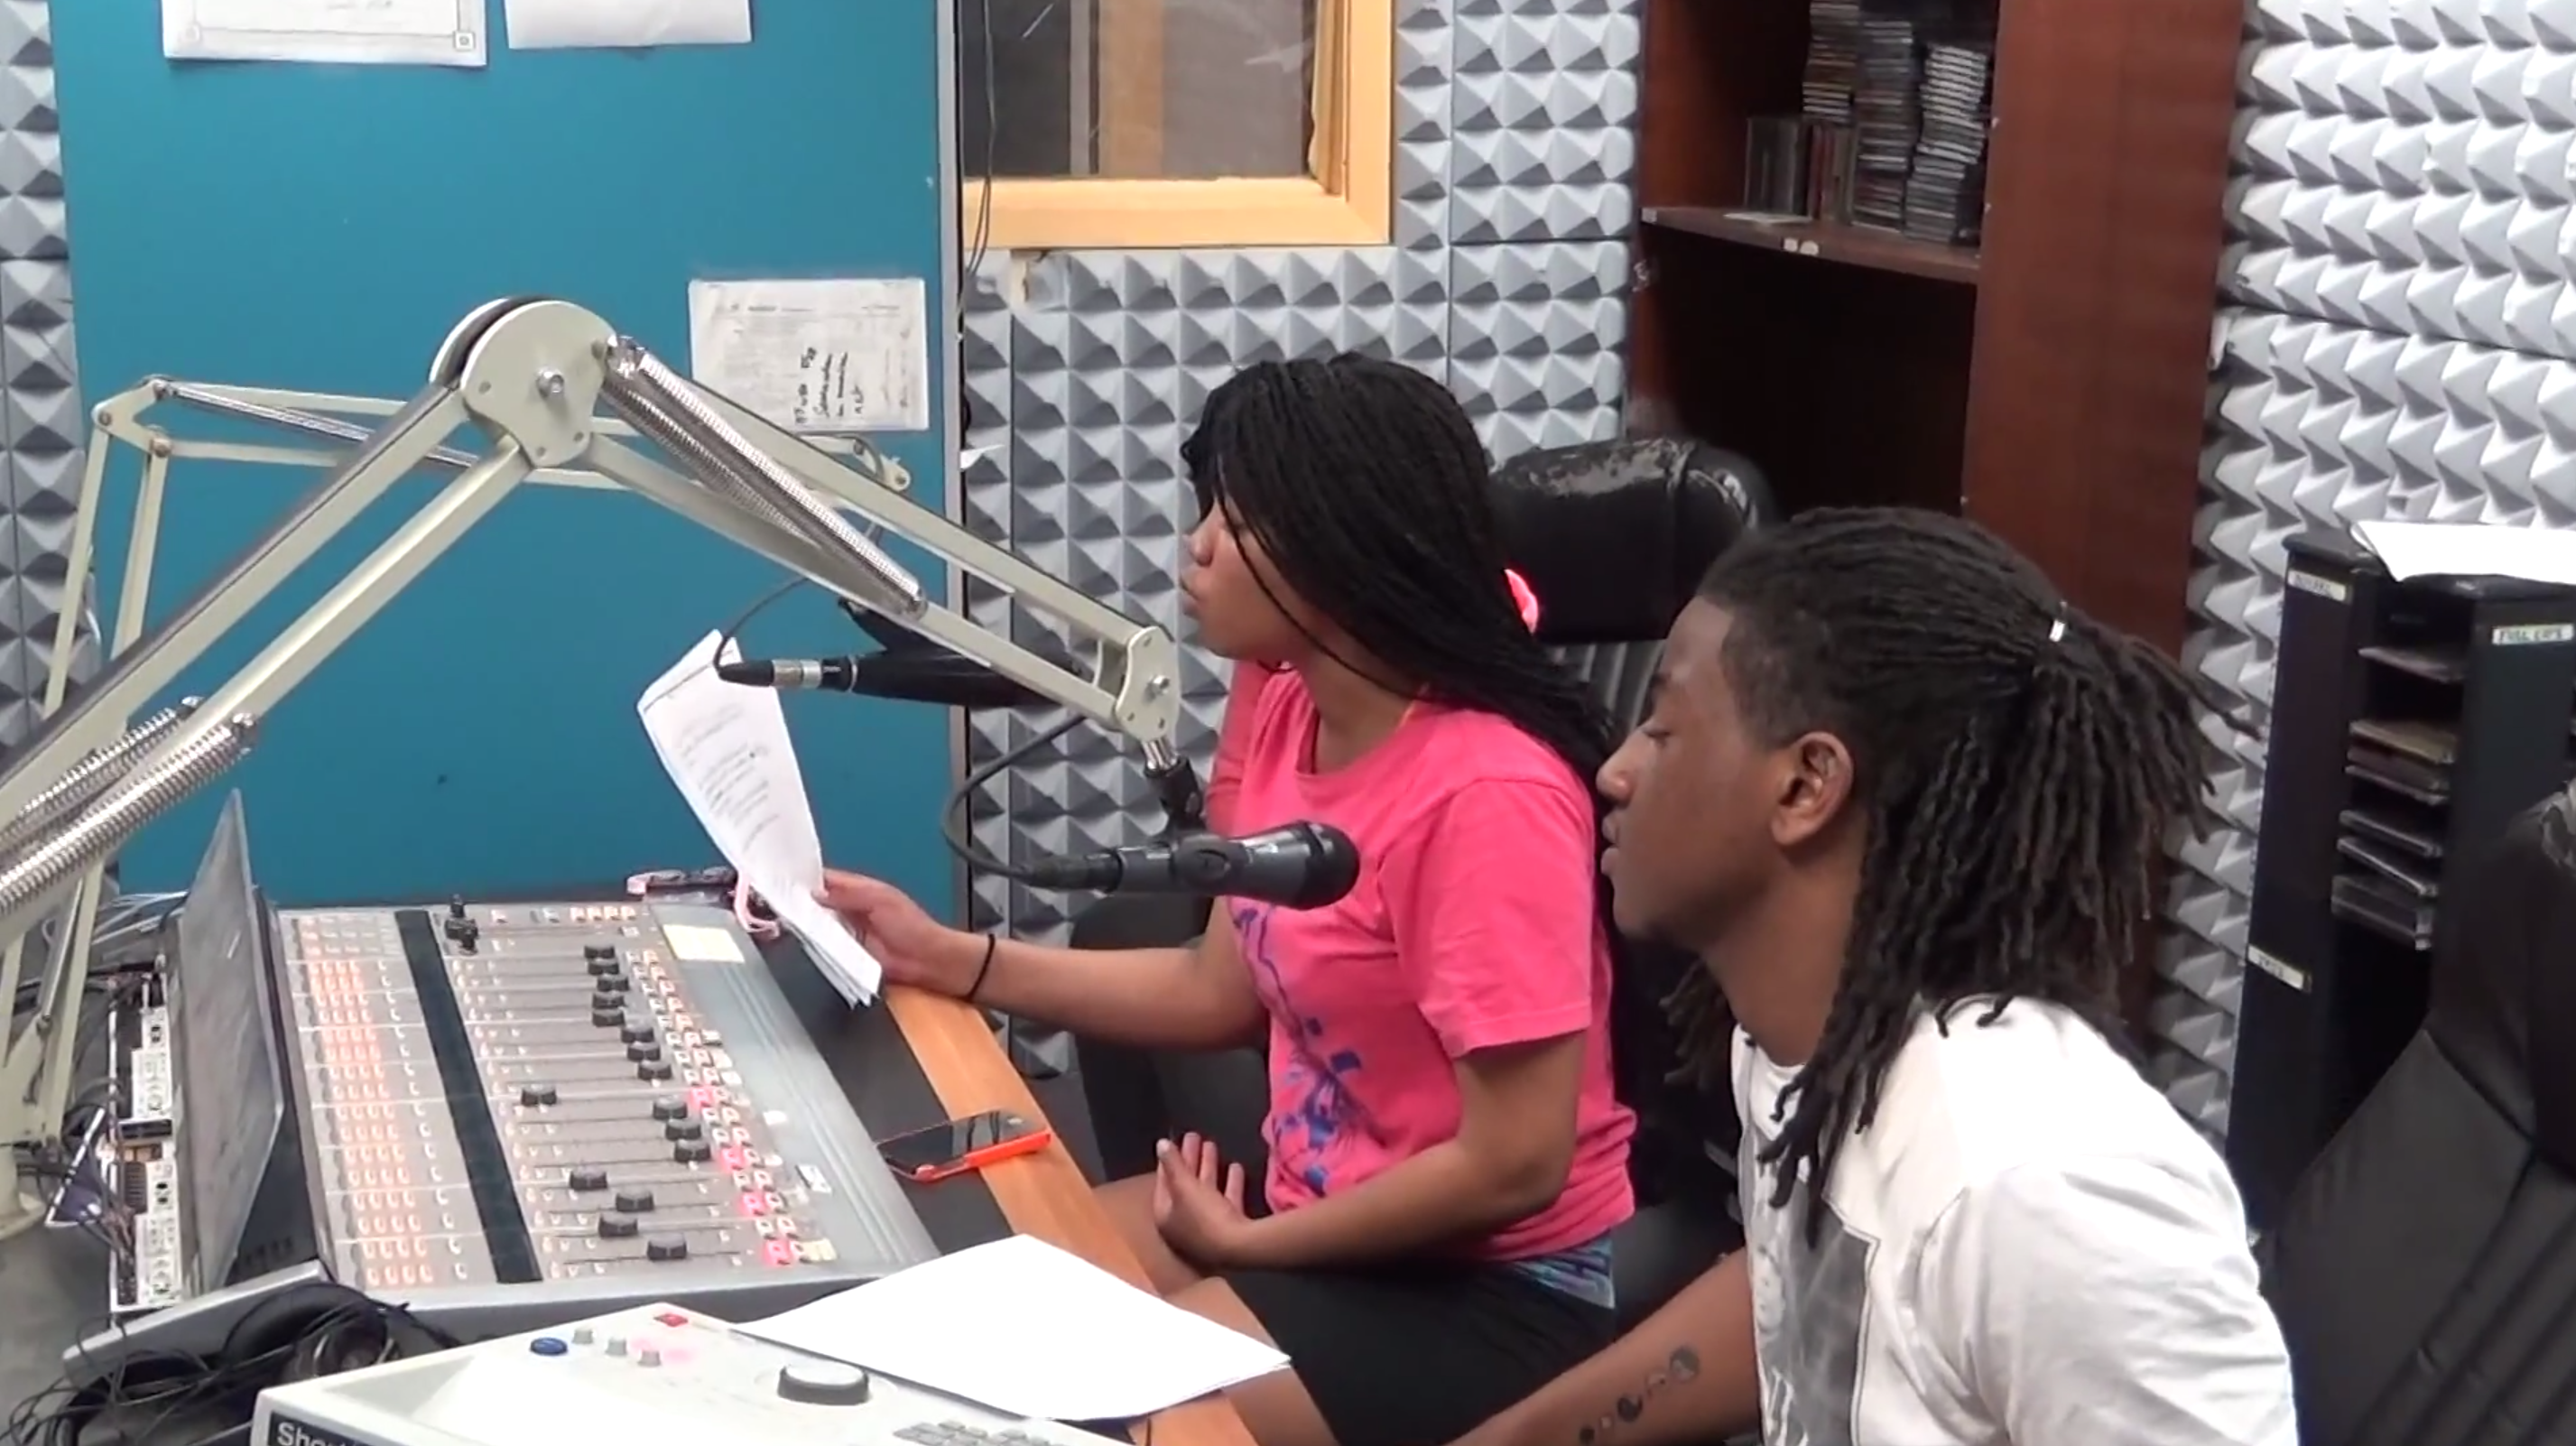 DJ Lovely With Her Show 'Real Life 101' on WPRL 91.7 FM